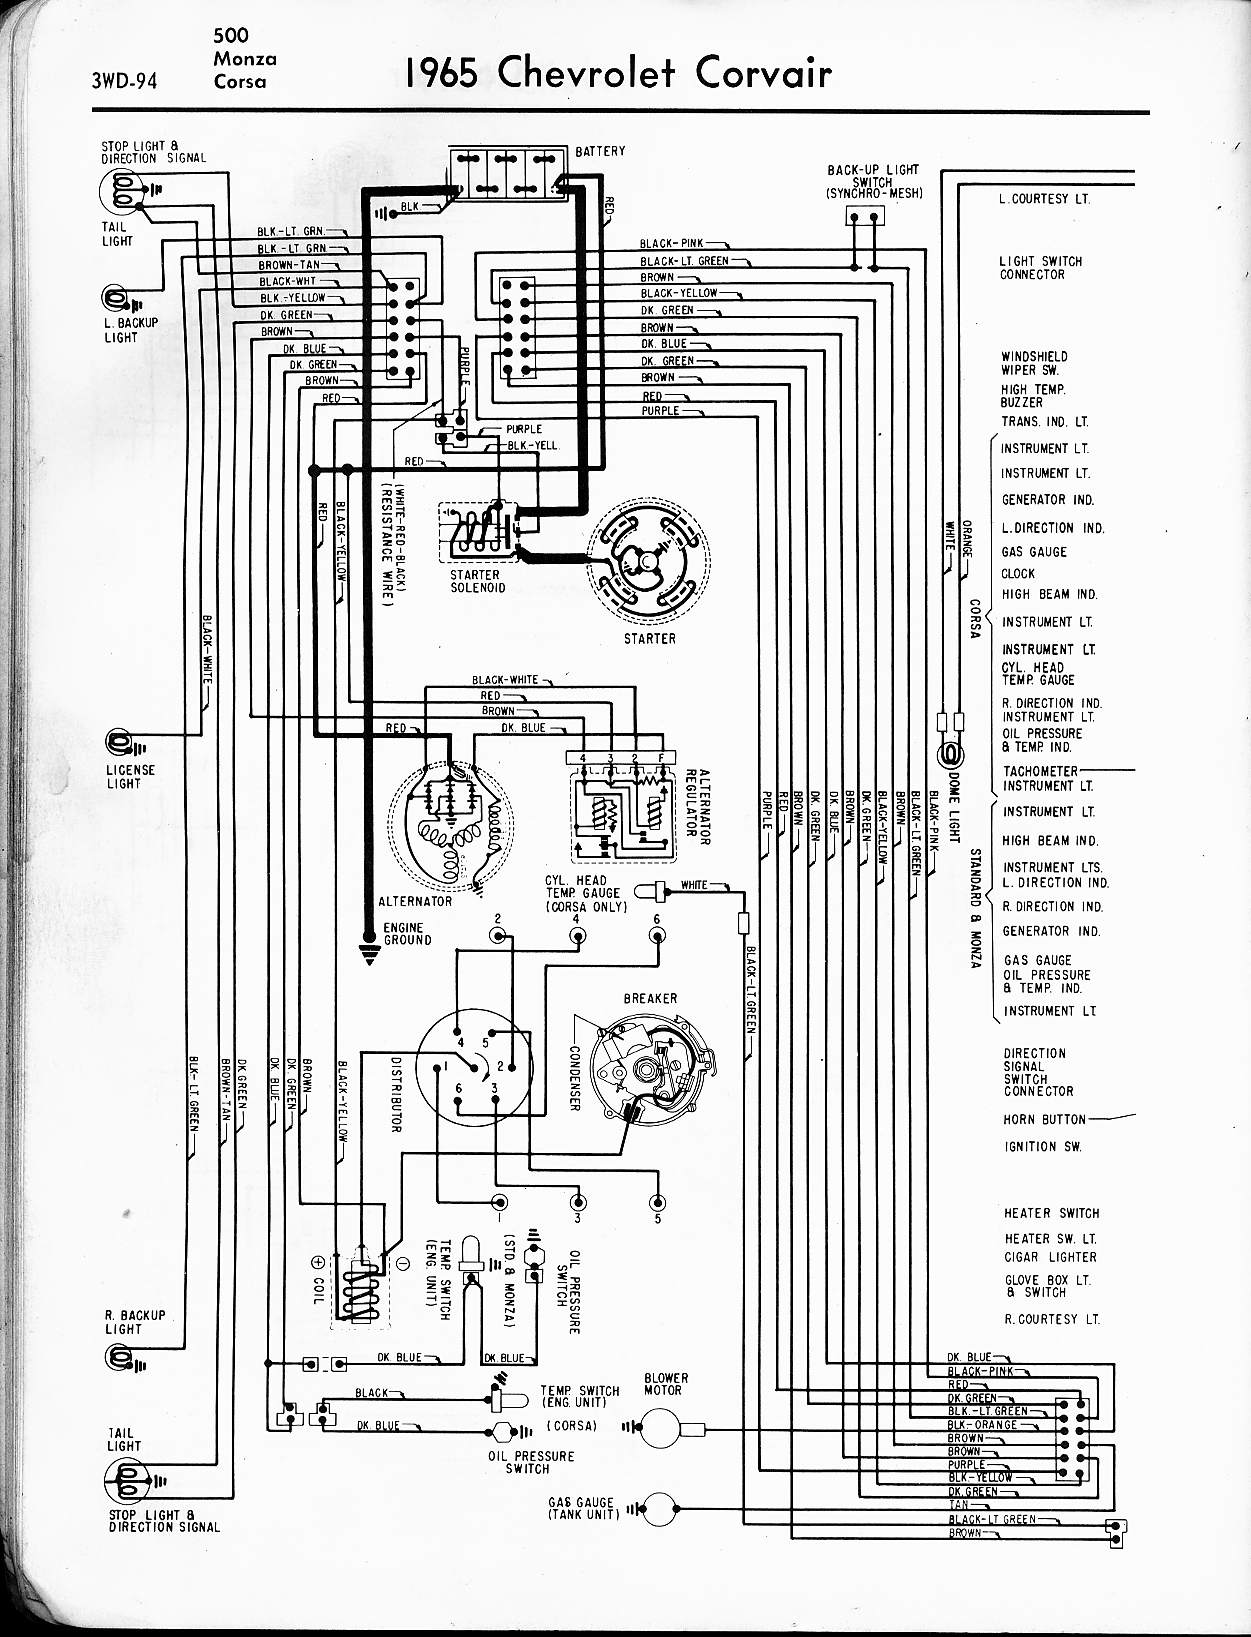 1963 corvair wiring diagram 1968 corvair wiring diagram #5